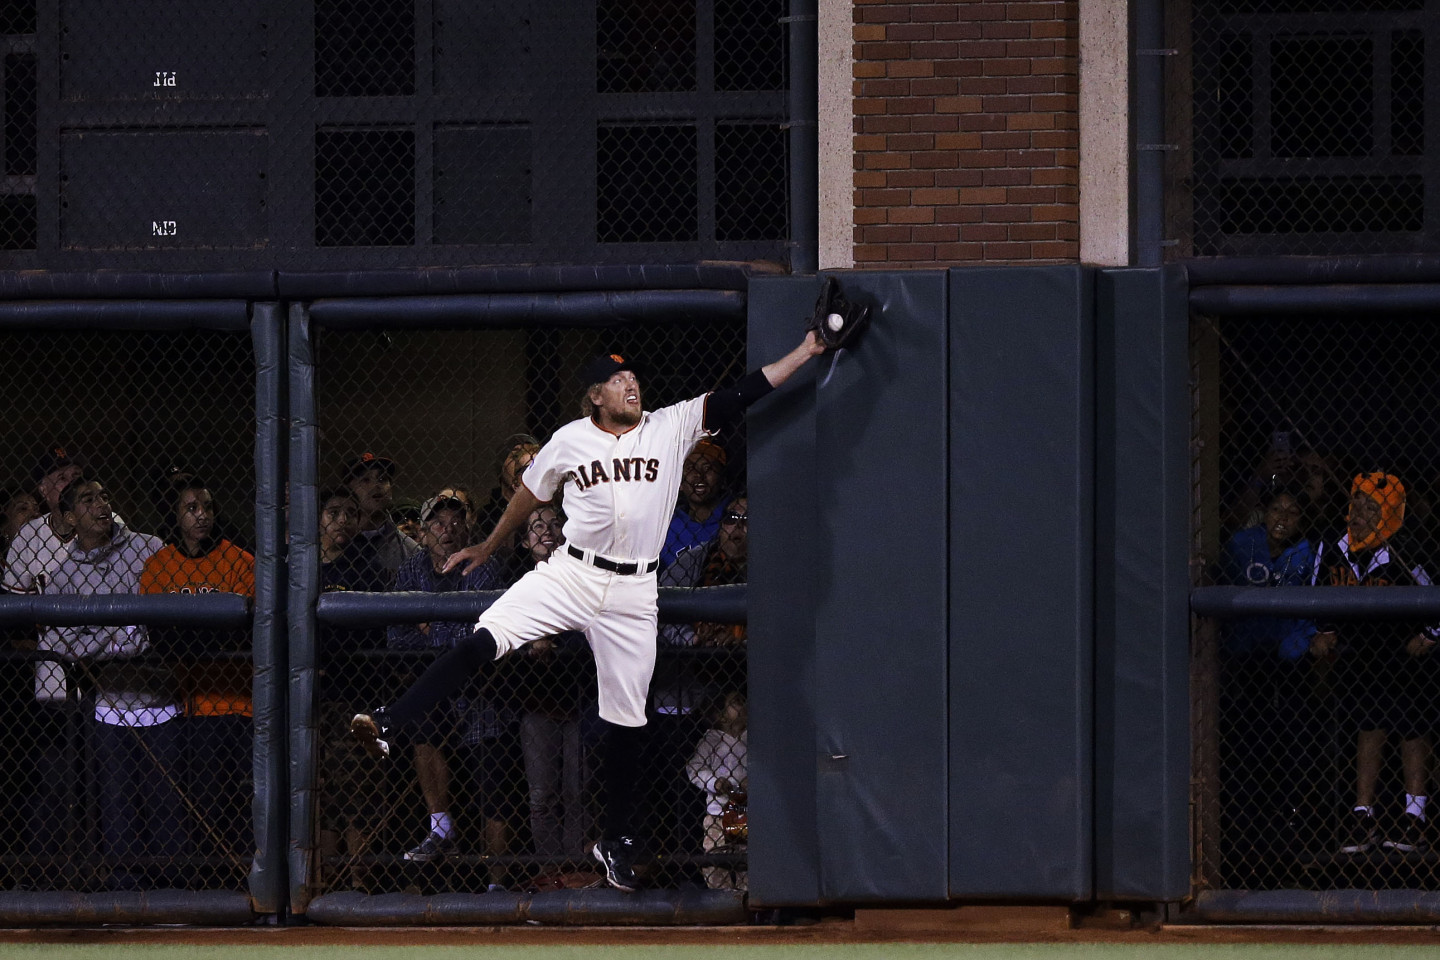 San Francisco Giants right fielder Hunter Pence makes a leaping catch in game four of the National League Division Series. The Giants won the game against the Washington Nationals 3-2 to advance to the National League Championship Series. (Ezra Shaw/Getty Images)